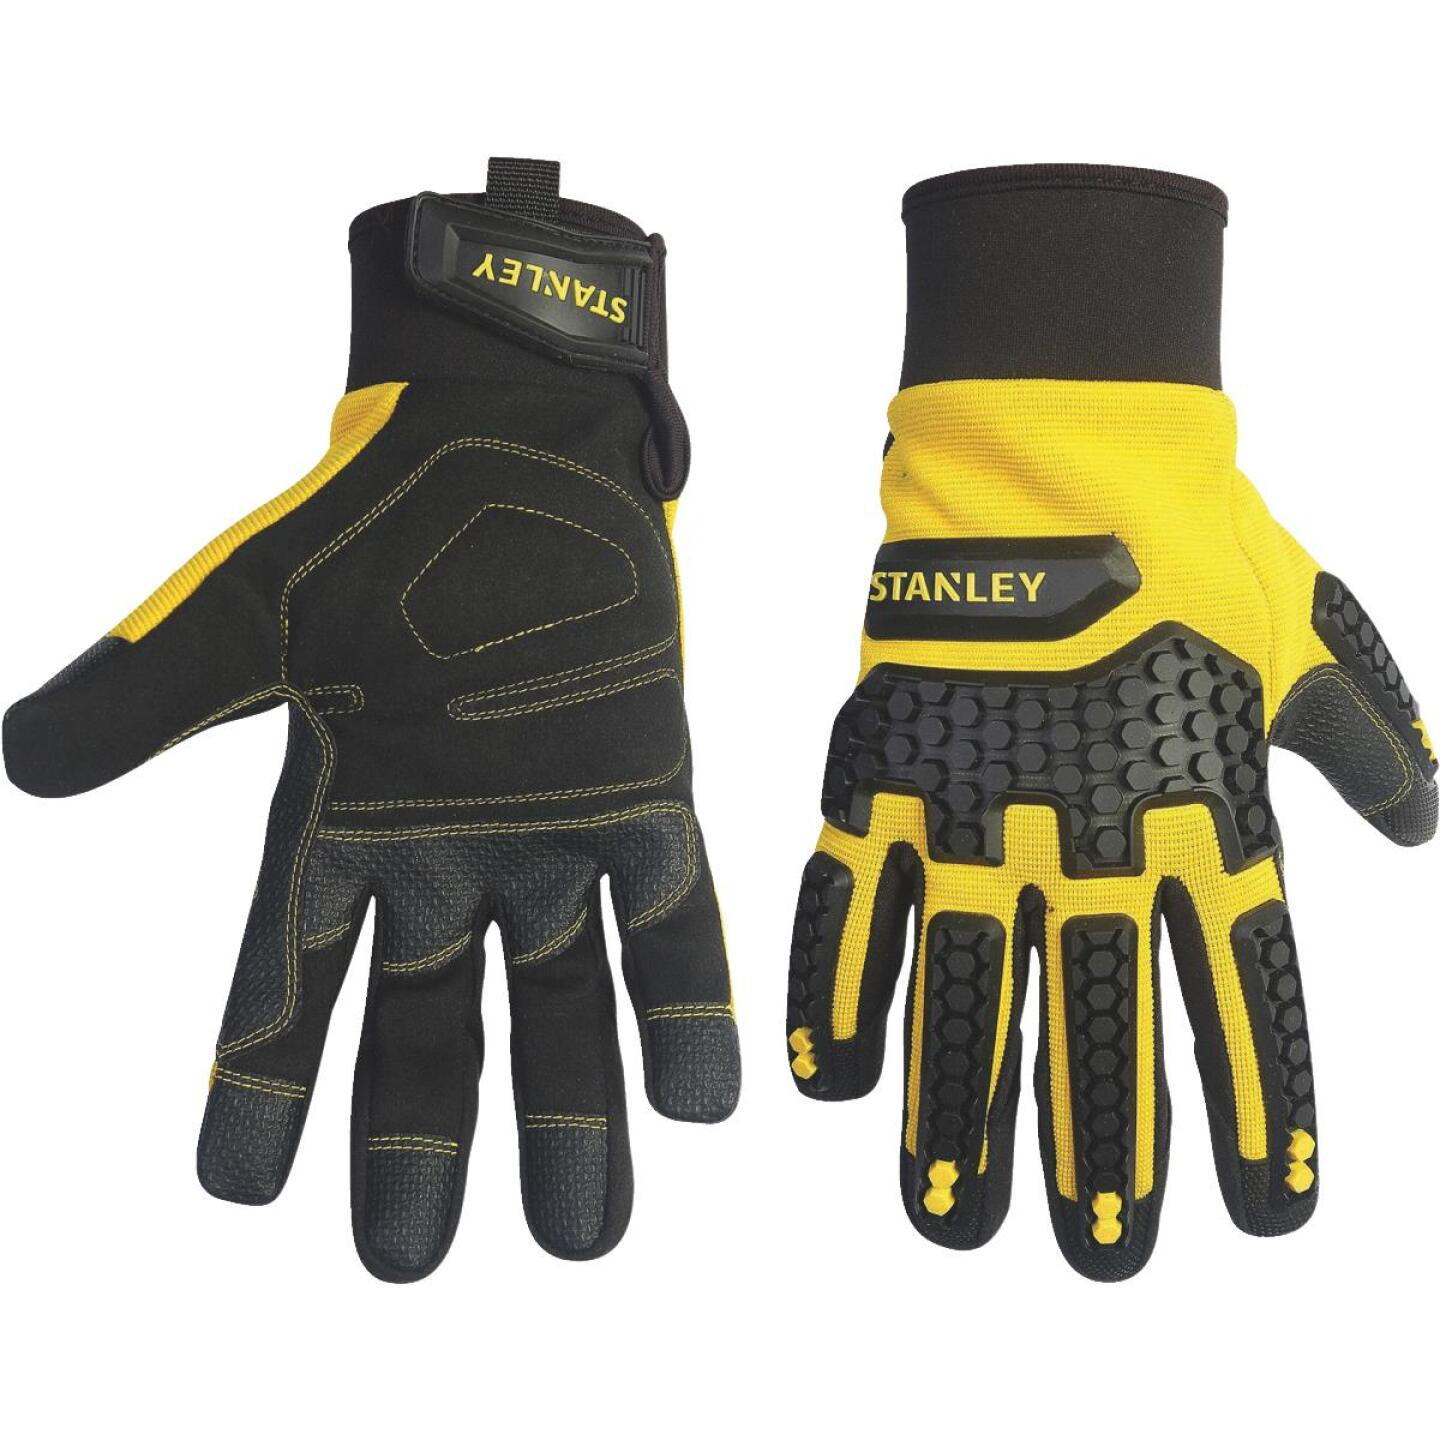 Stanley Impact Pro Men's Large Synthetic Leather High Performance Glove Image 1